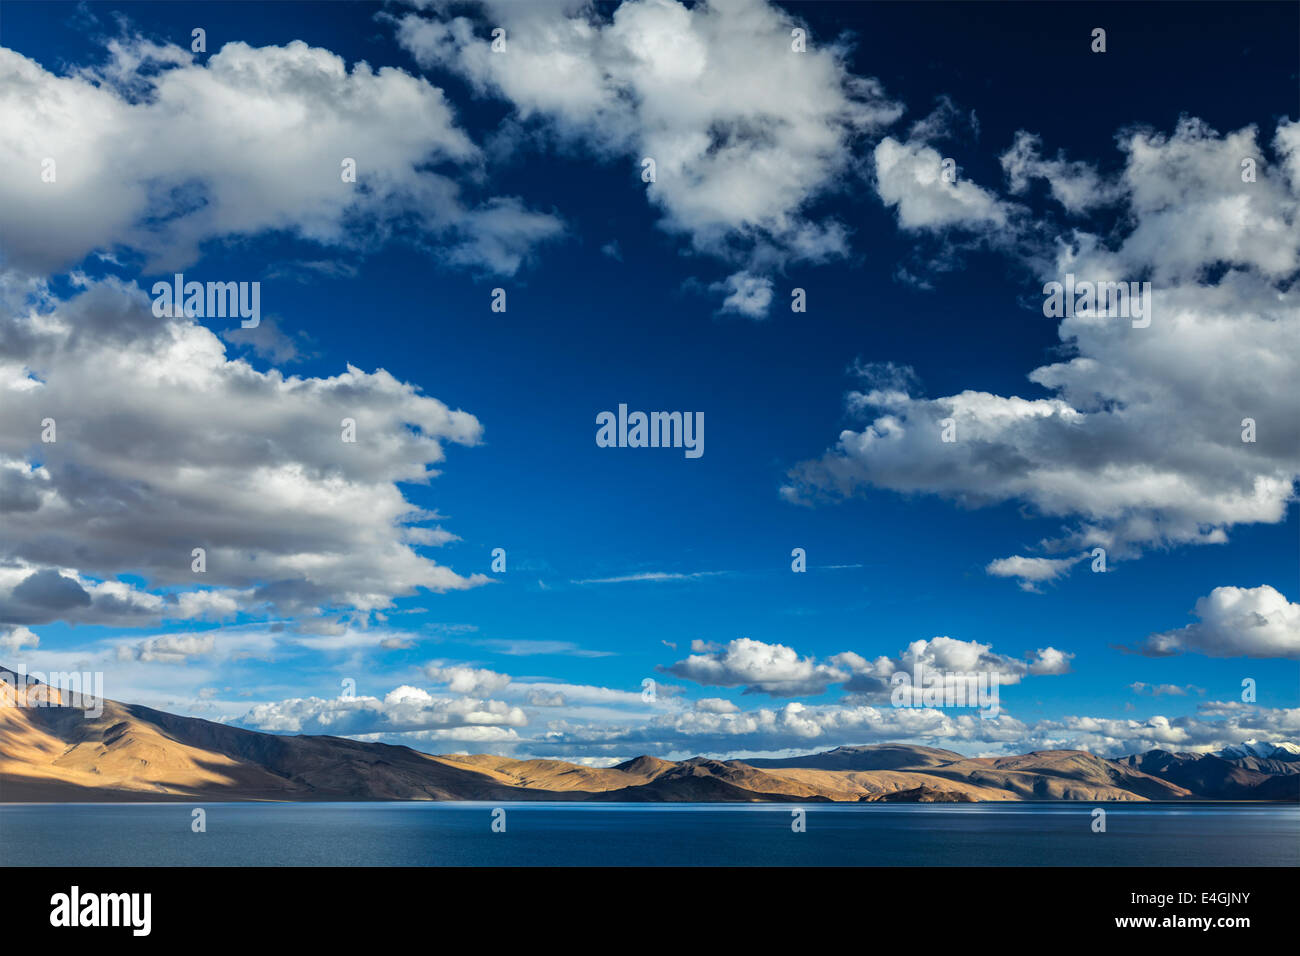 Himalayan mountain lake in Himalayas Tso Moriri on sunset, Korzok, Ladakh, India - Stock Image